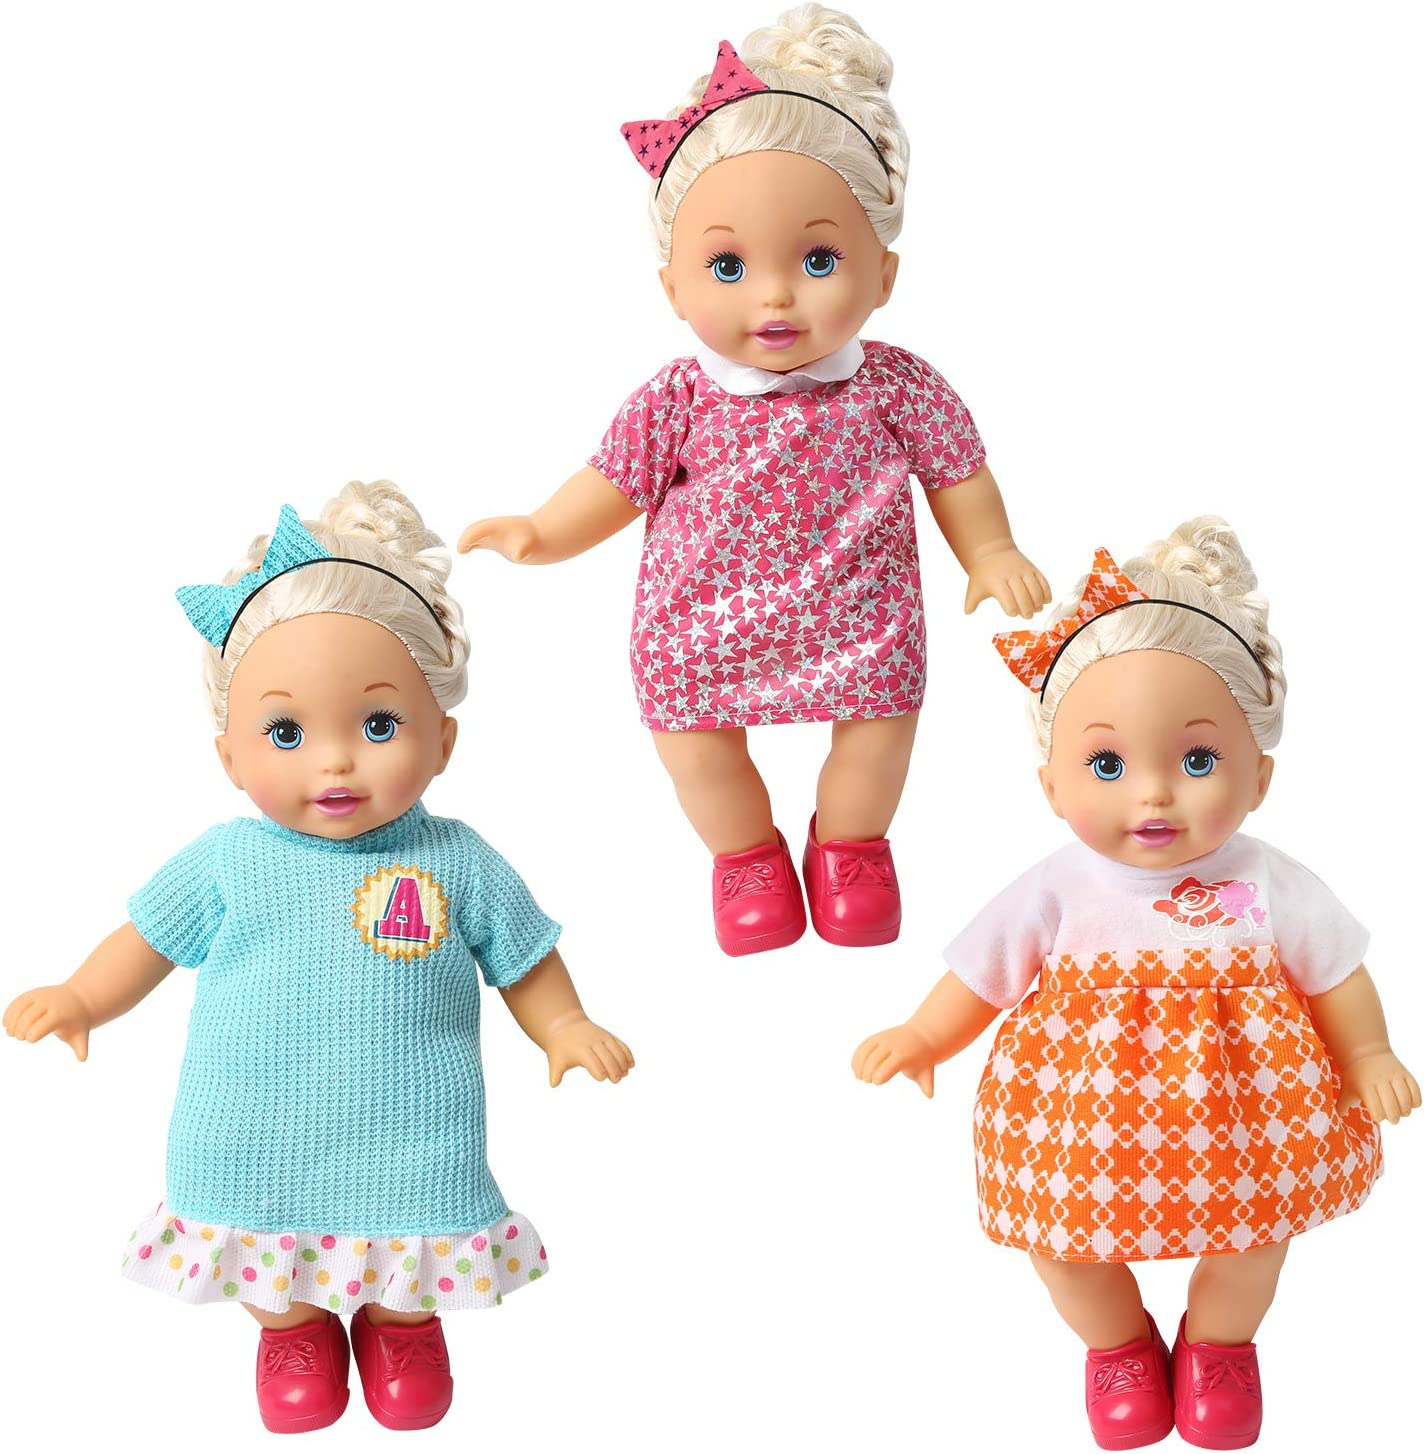 Amazon.com: BOBO Clothes Set of 12 for 12-14-16 Inch Alive Lovely Baby Doll  Clothes Dress Outfits Costumes Dolly Pretty Doll Cloth Handmade Girl  Christmas Birthday Gift: Toys & Games